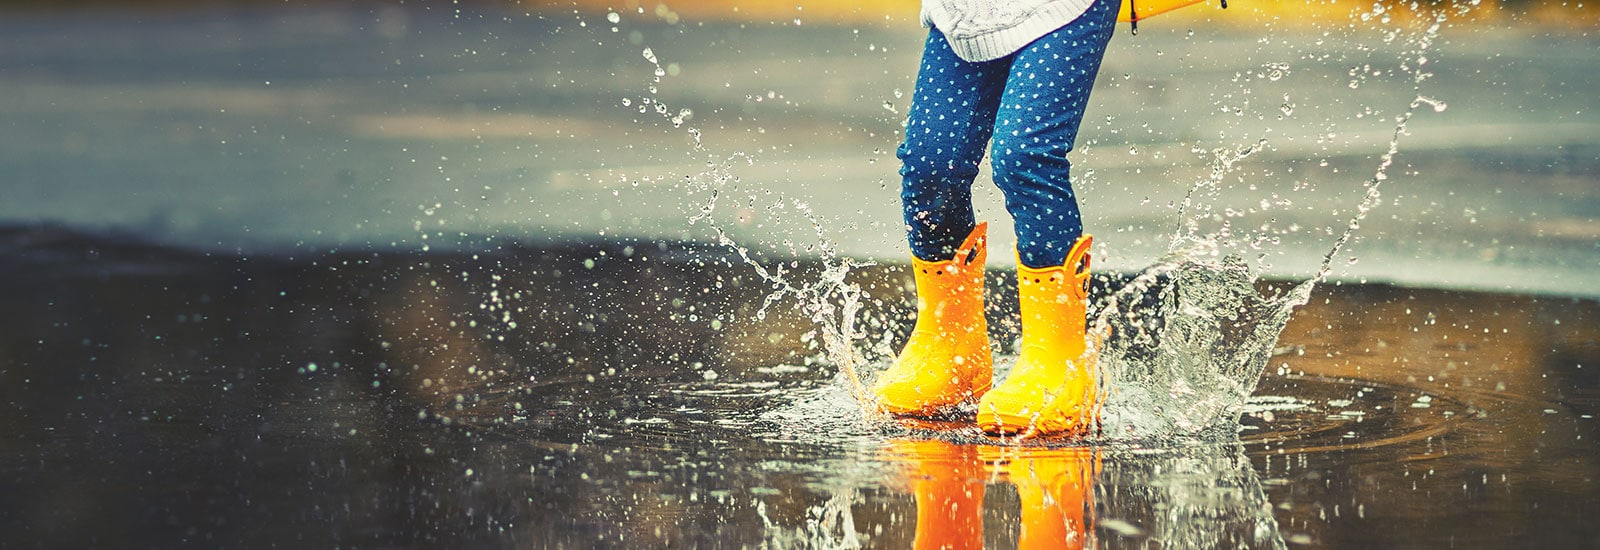 little girl in rain boots in the rain